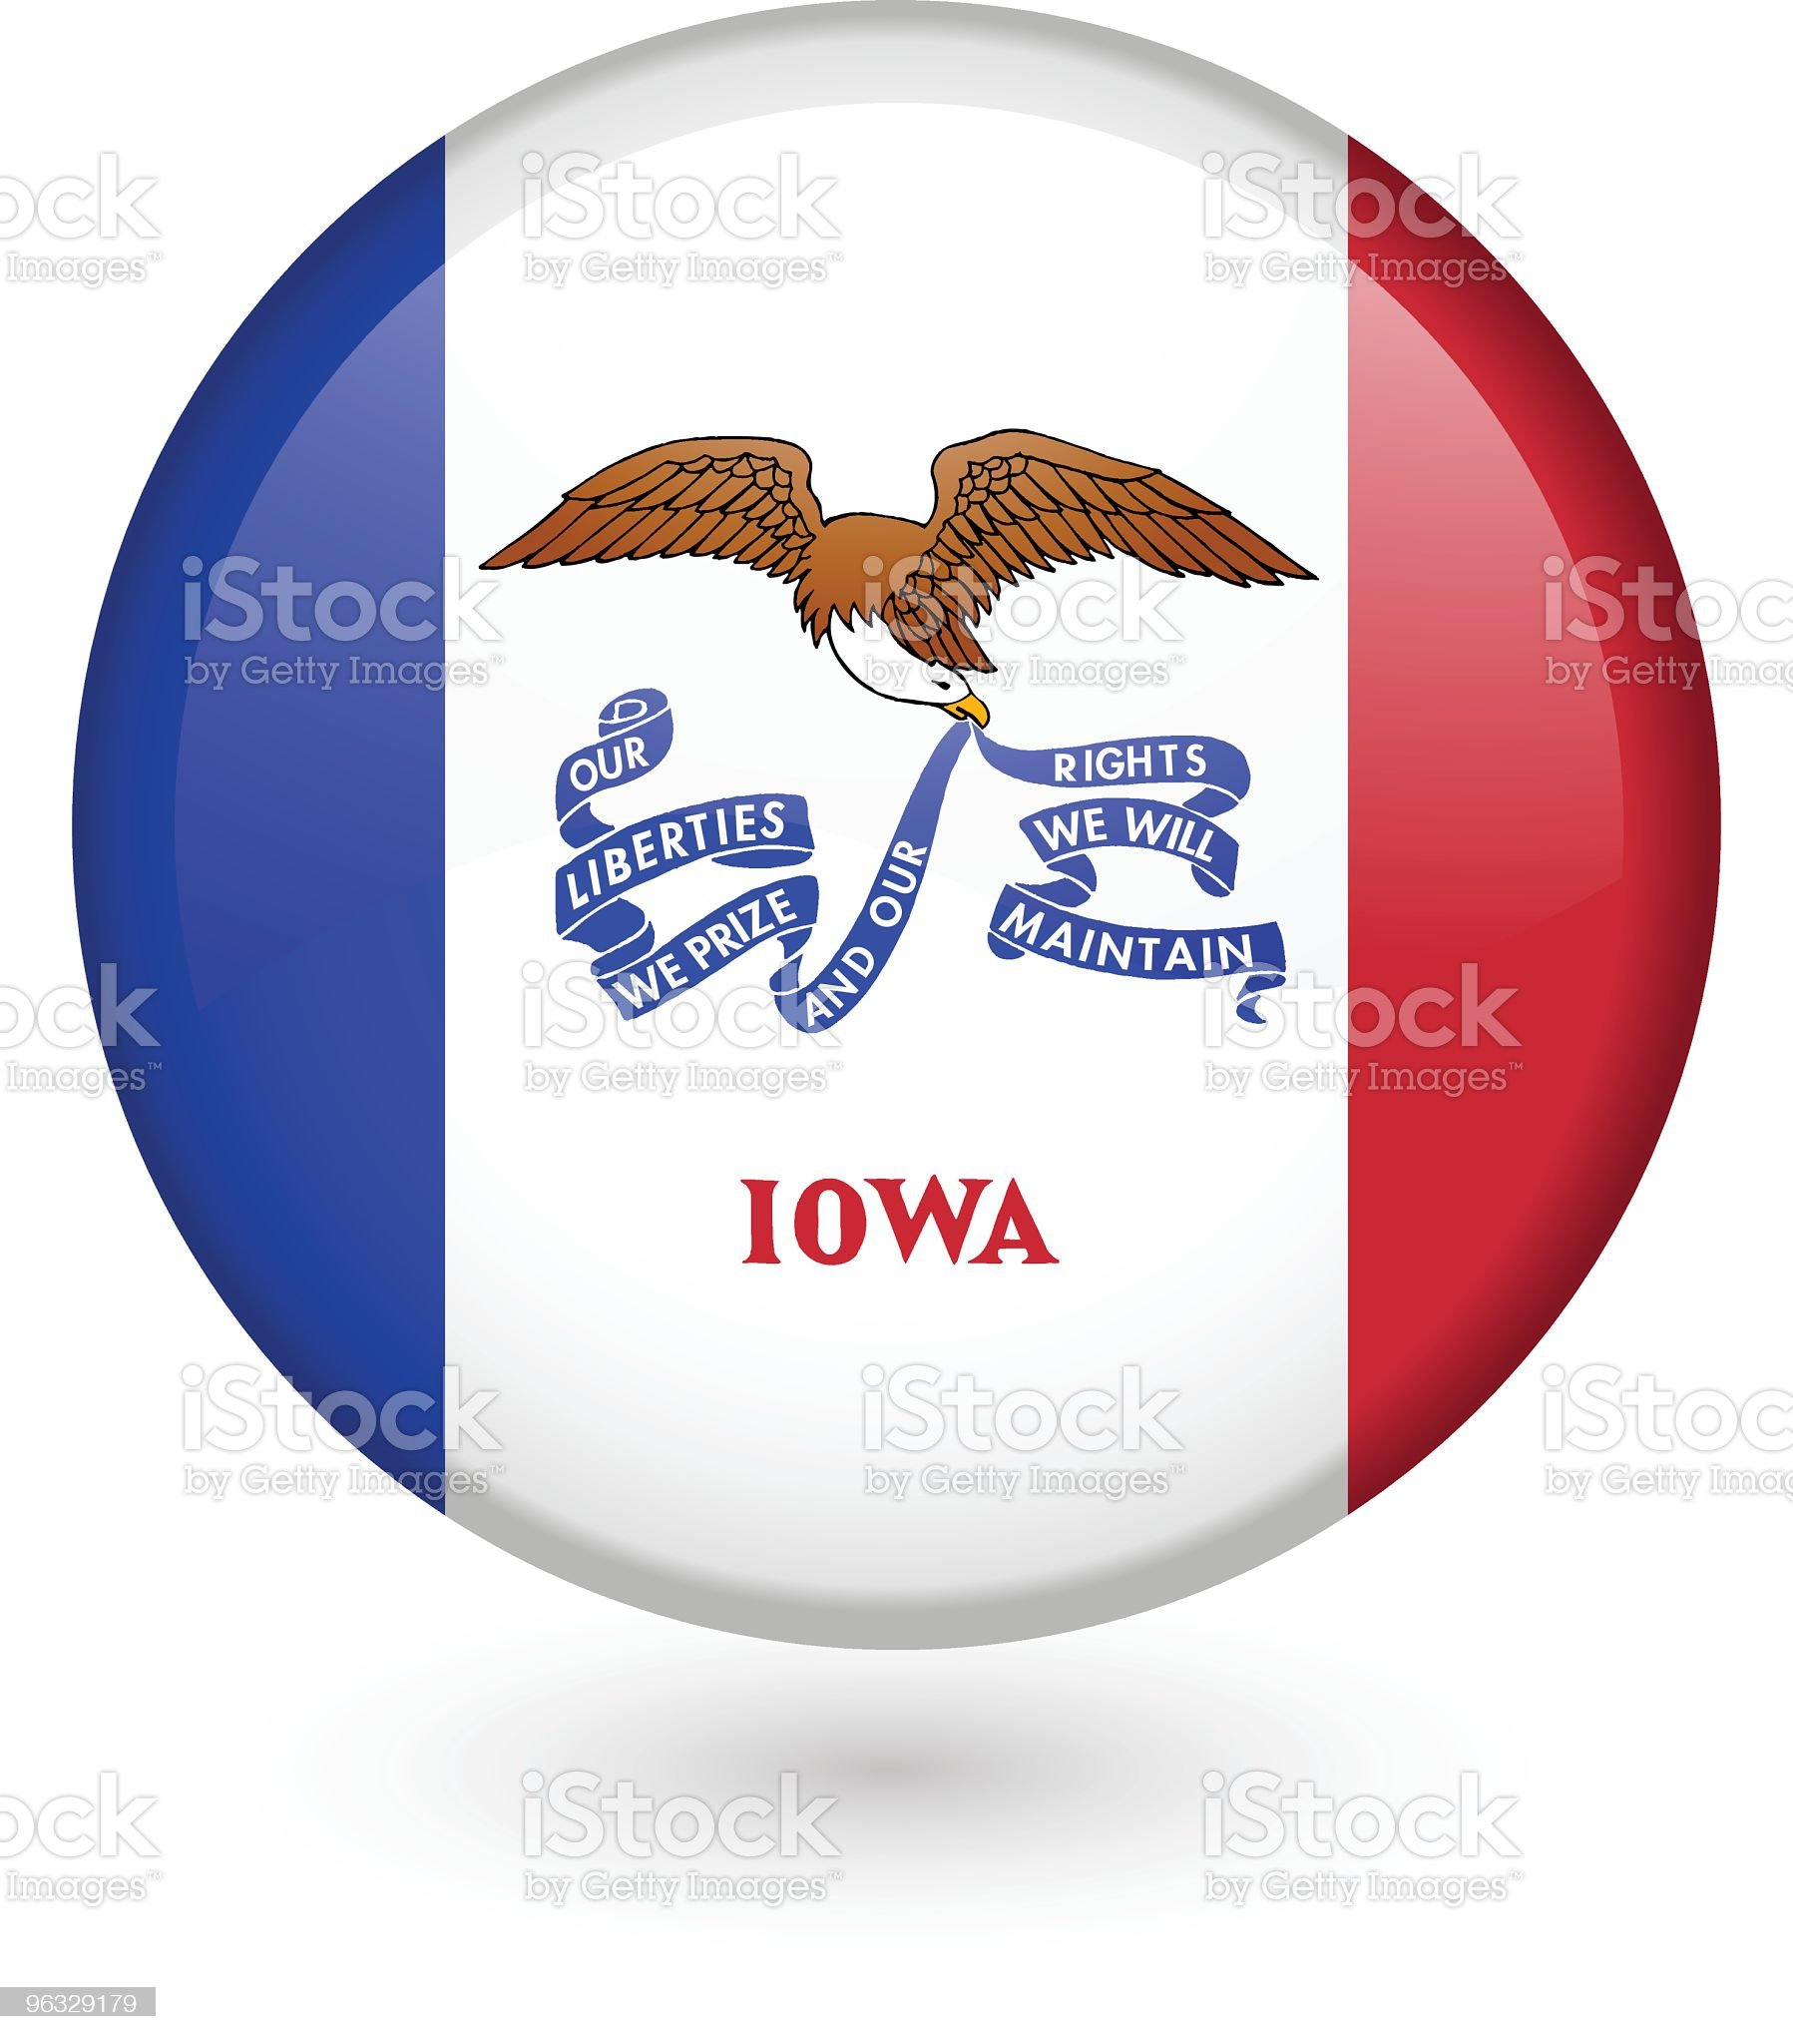 Iowa flag button royalty-free stock vector art